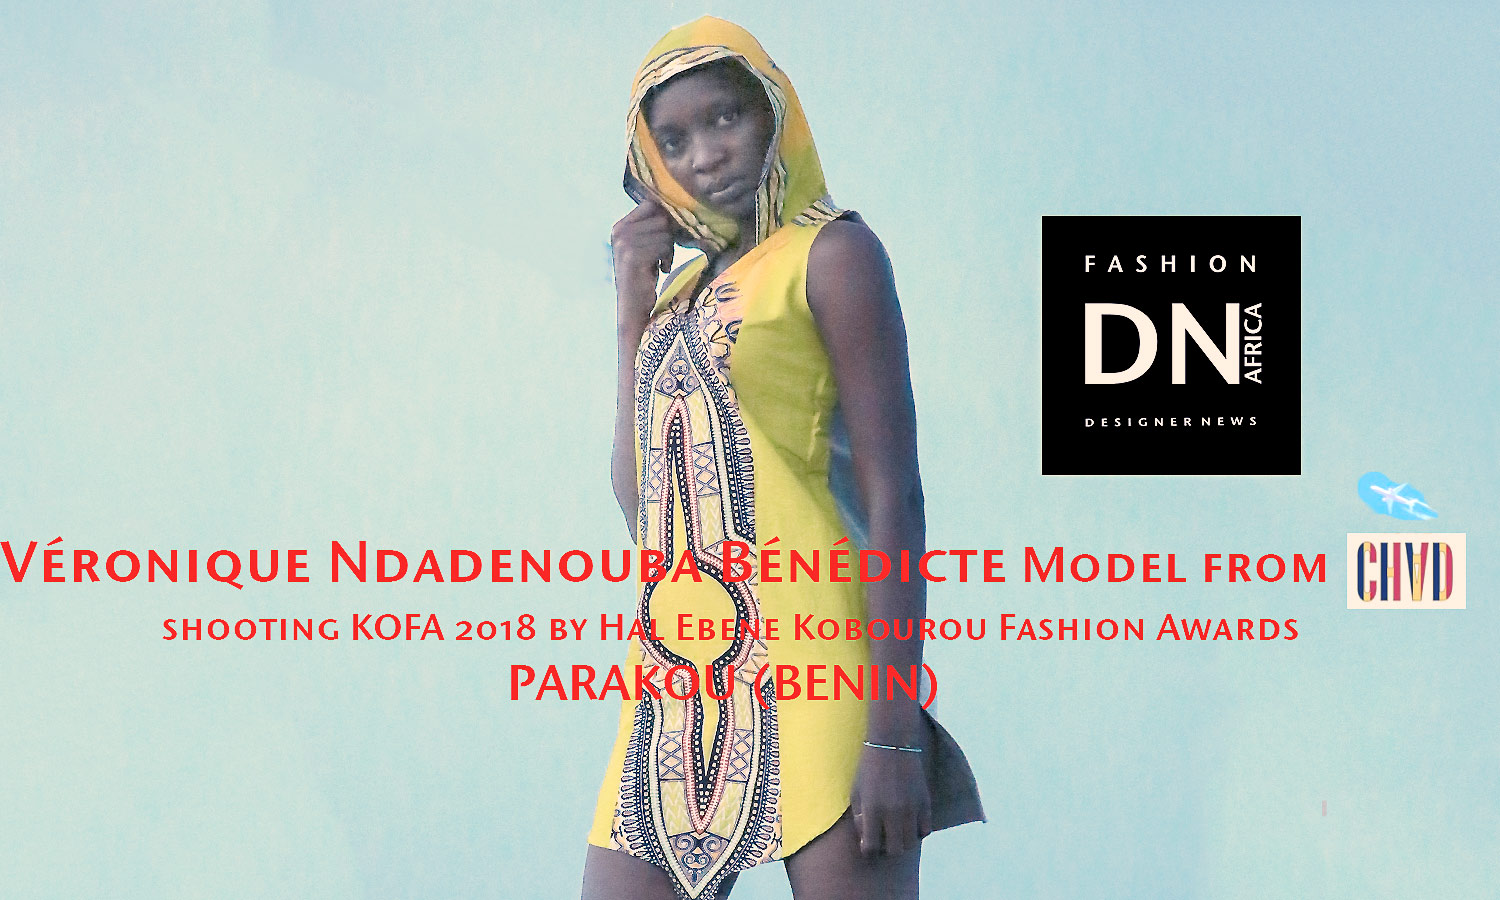 AFRICAN FASHION STYLE MAGAZINE-KOFA-KAMISSOKO -Véronique ndadenouba Bénédicte FROM TCHAD - DN AFRICA - STUDIO 24 NIGERIA